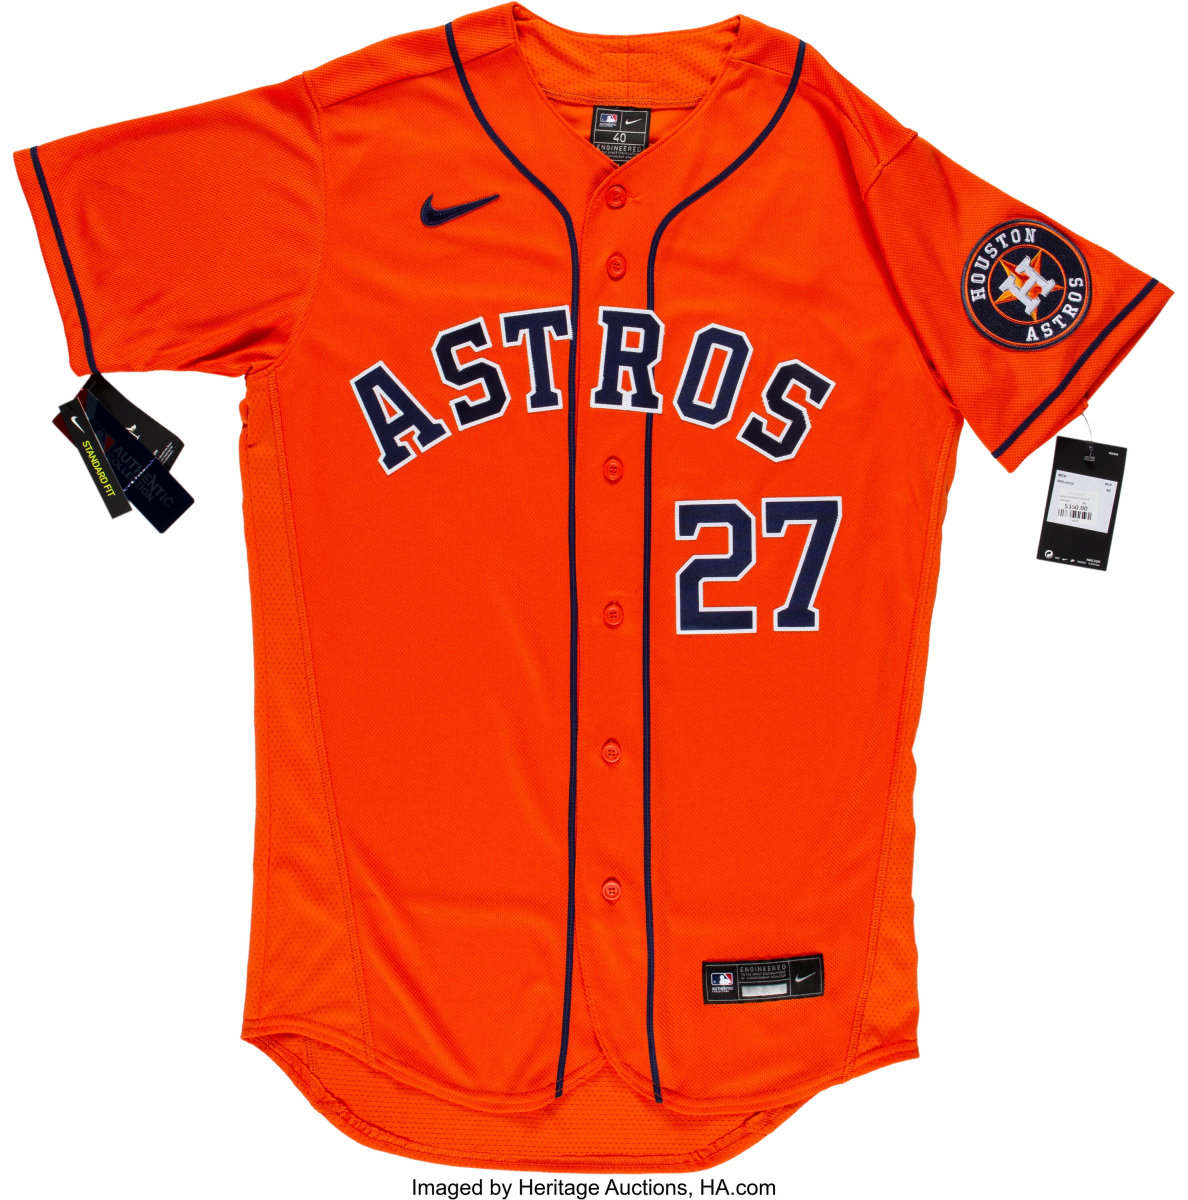 Joe Altuve jersey available in Bid 2 End Cancer Auction.